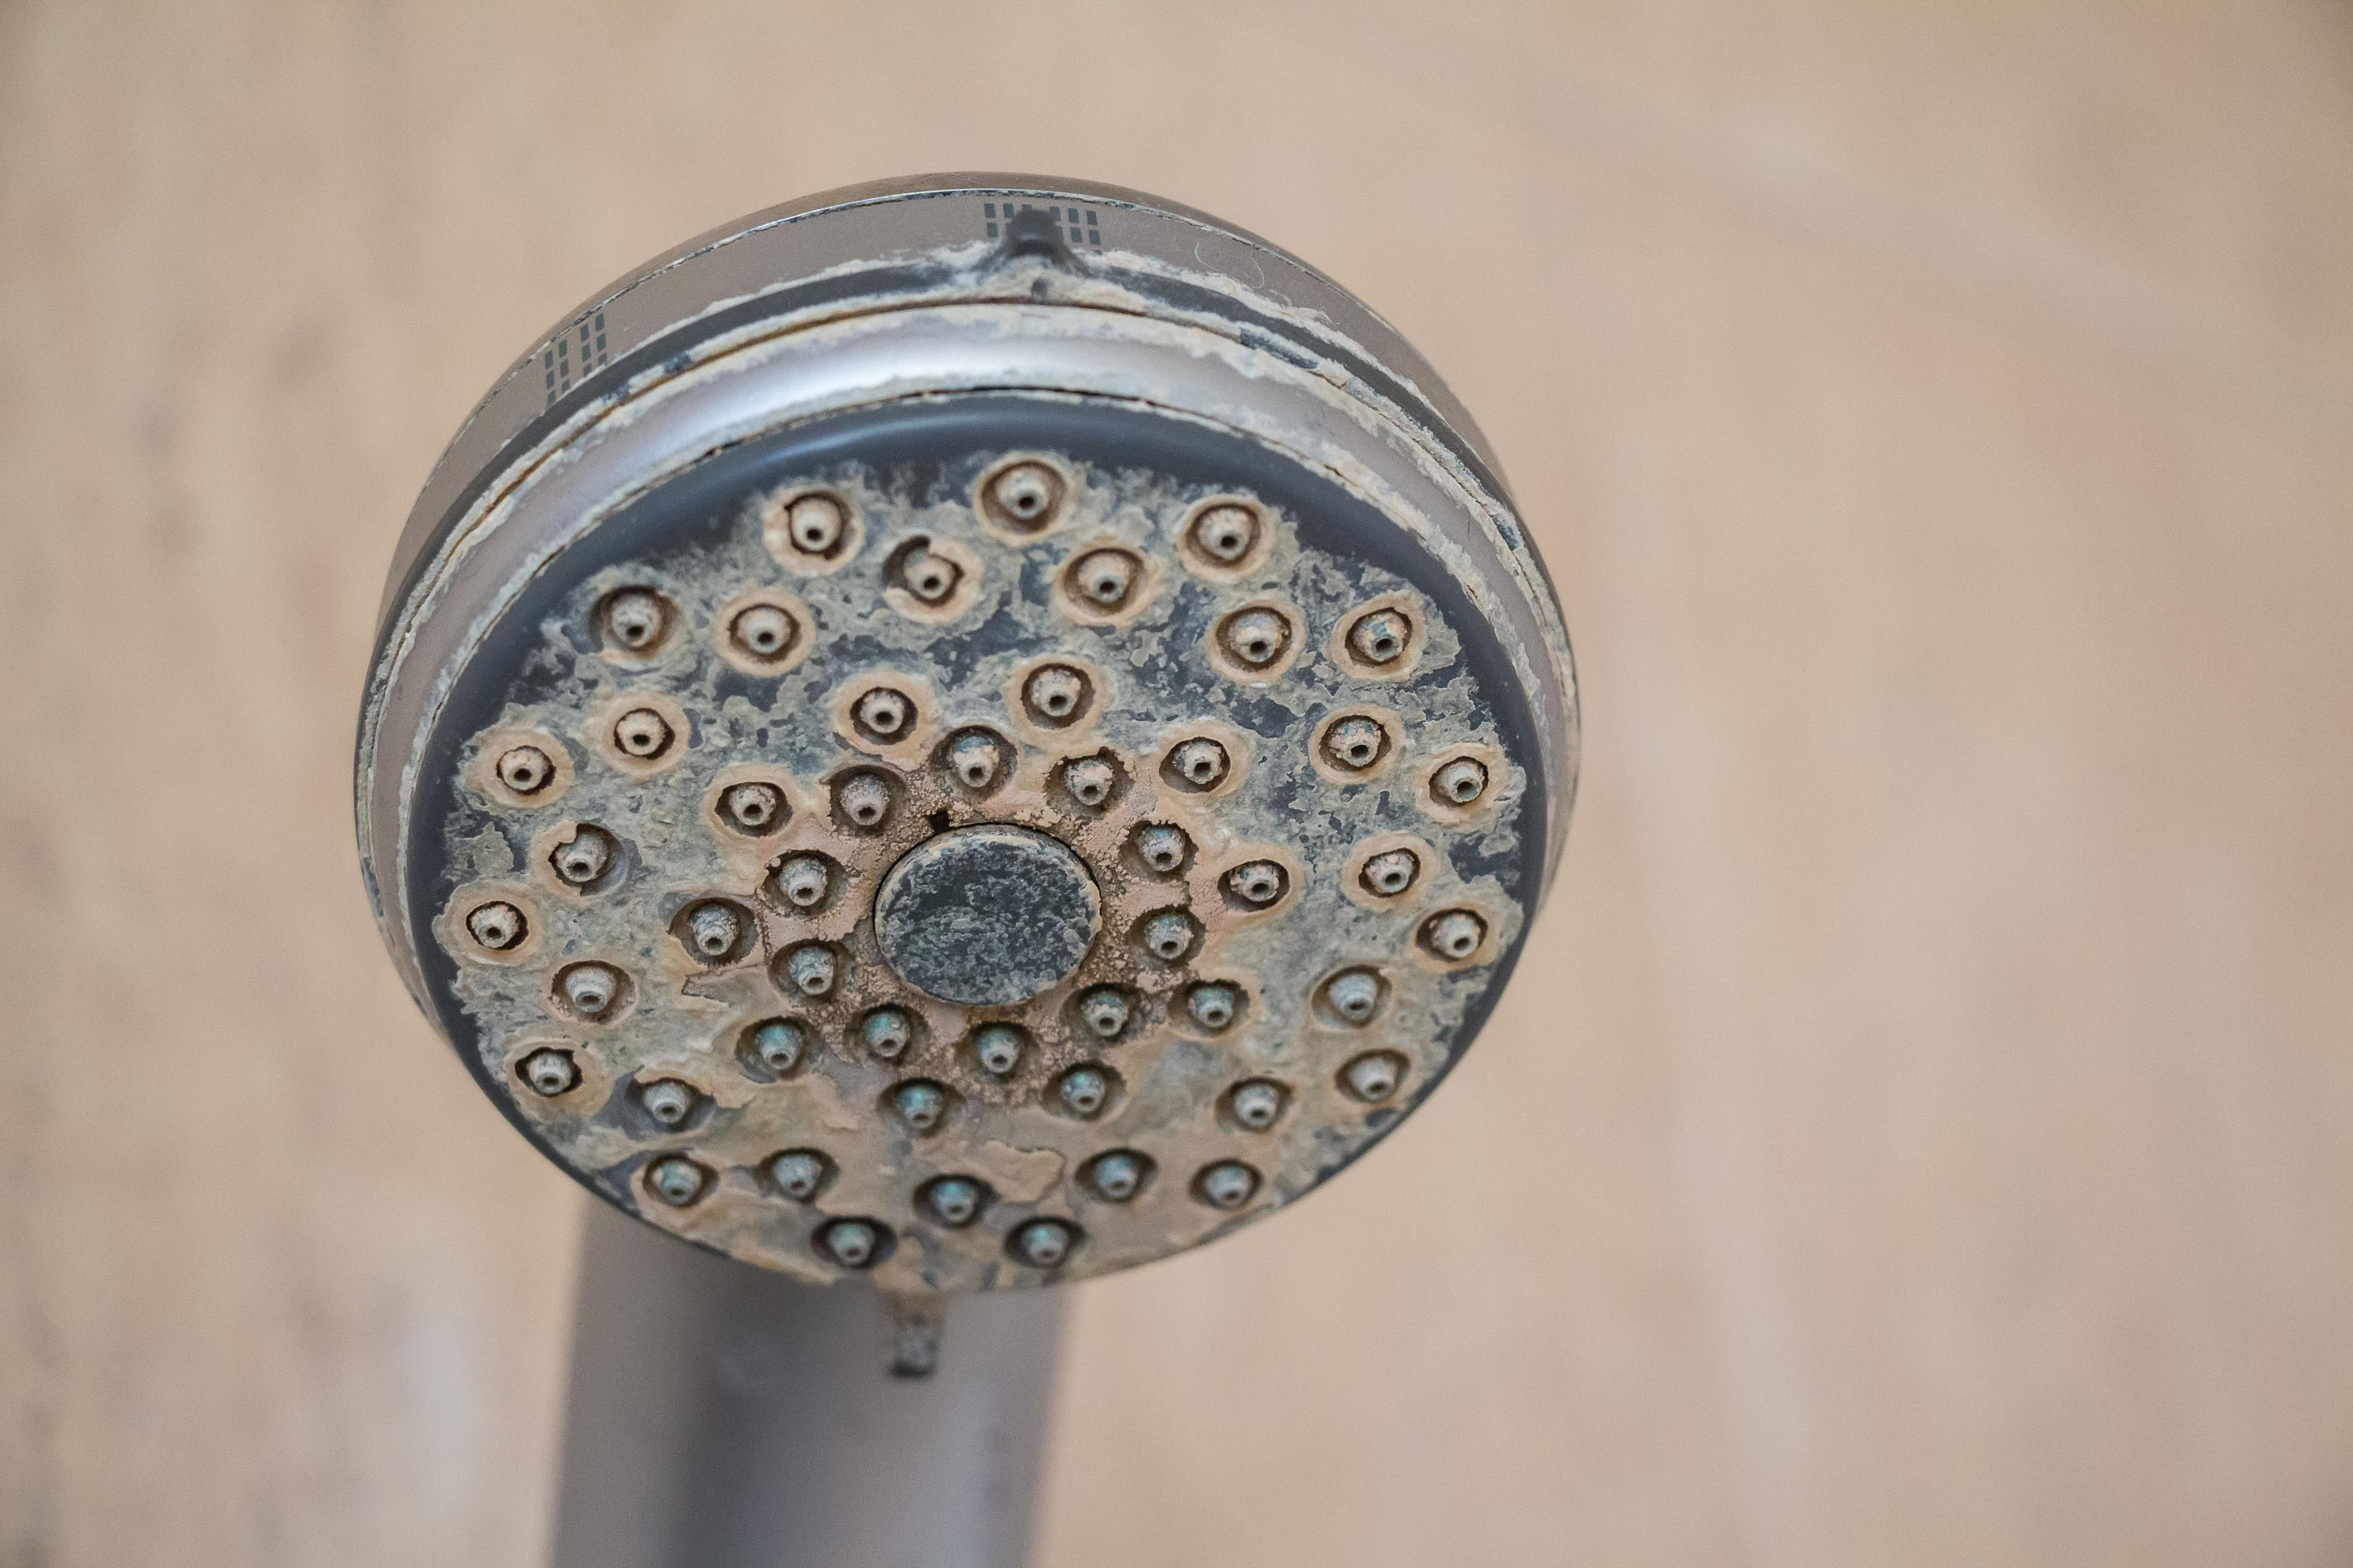 [showerhead buildup]